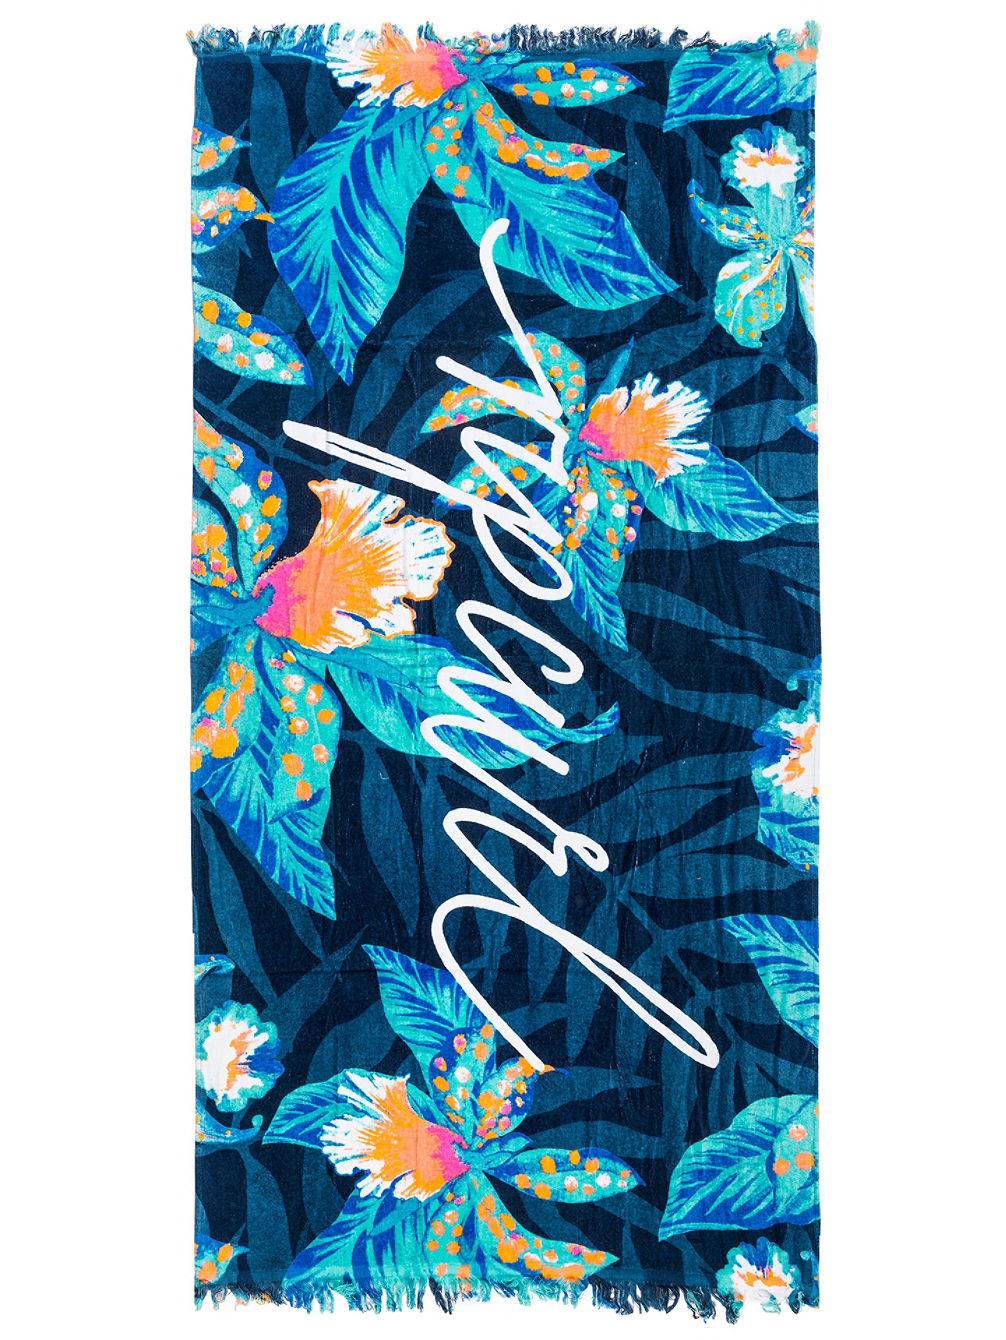 Buy Rip Curl Standard Tropic Tri Towel online at blue-tomato.com